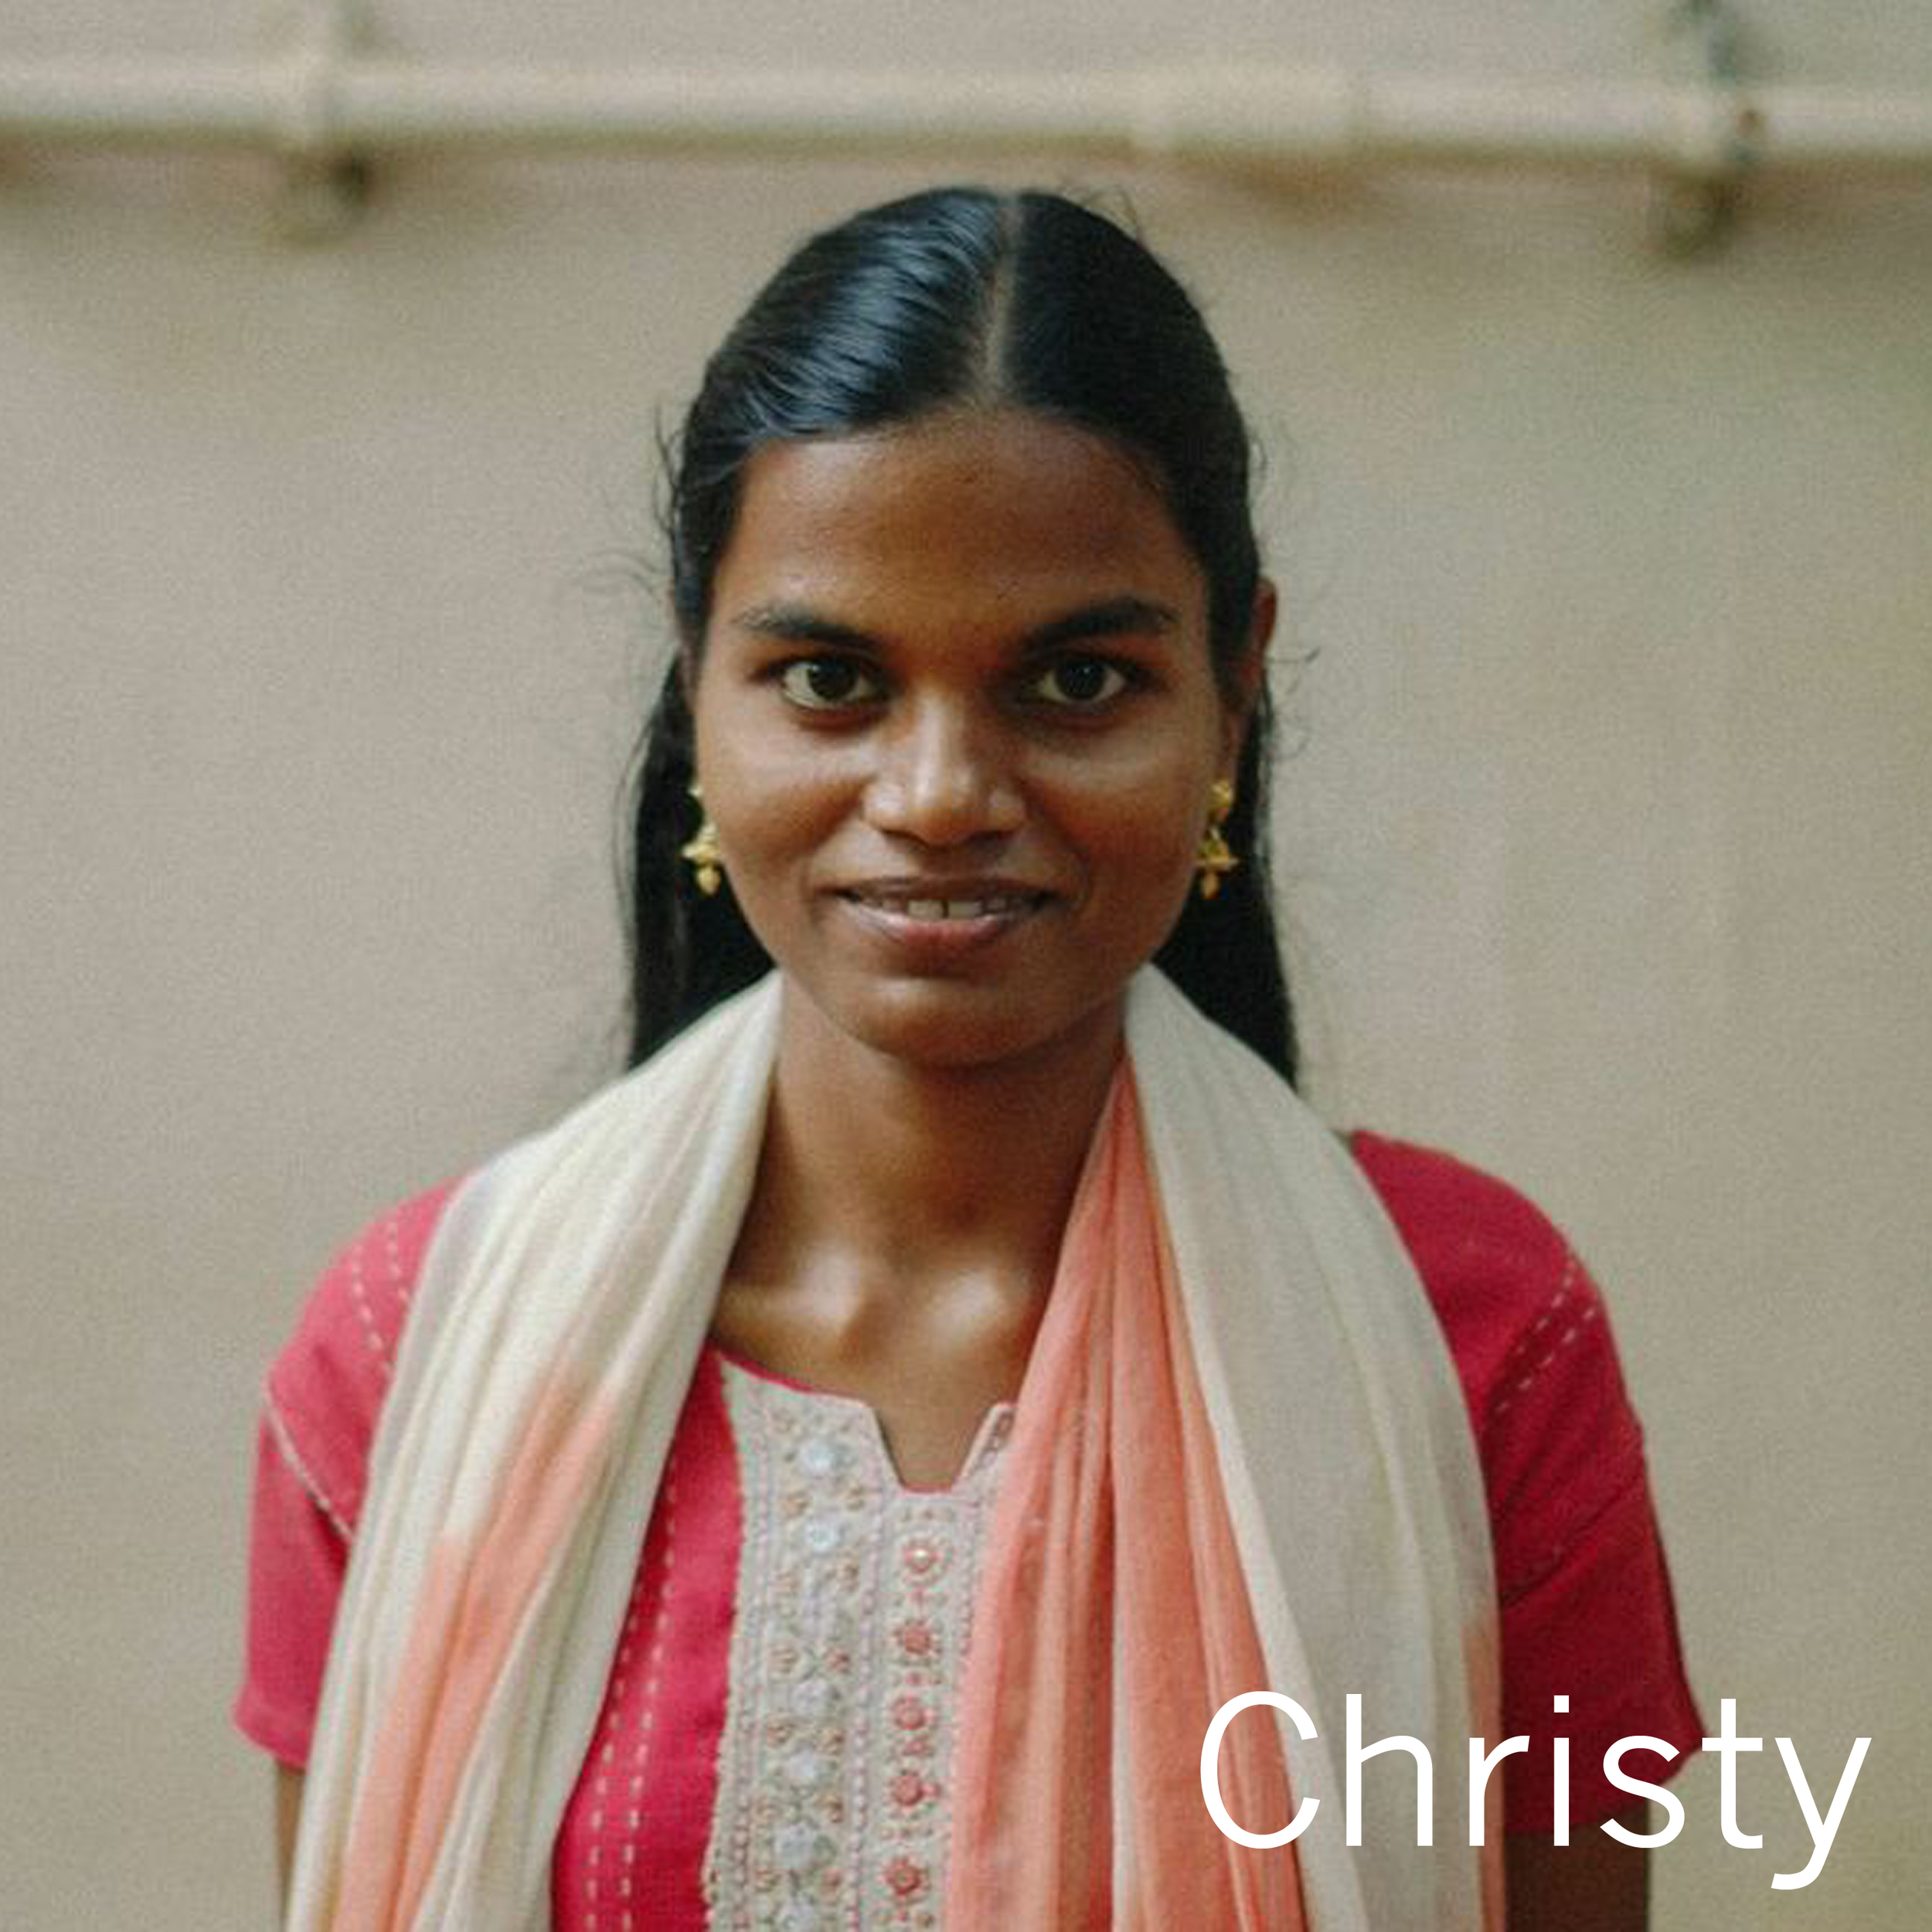 Christy004_Name.jpg